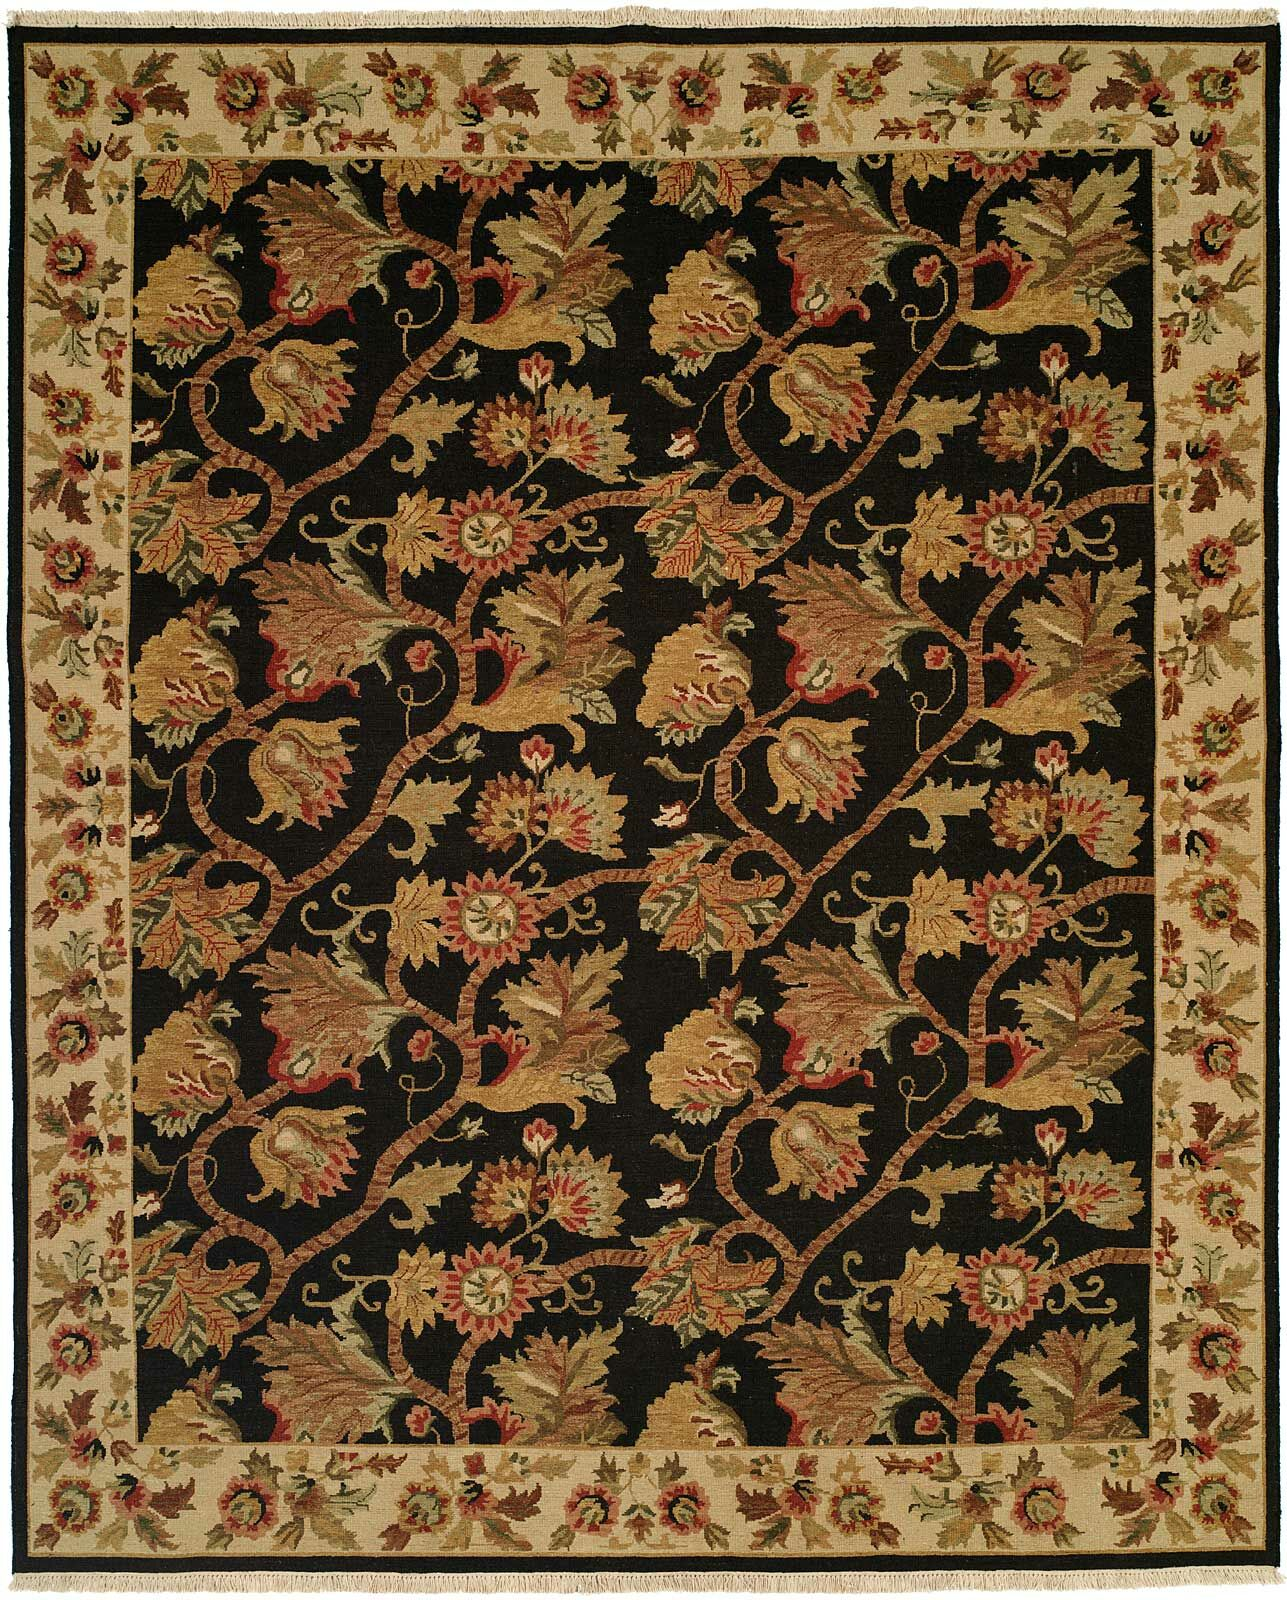 Acharya Hand-Woven Black/Brown Area Rug Rug Size: Runner 2'6